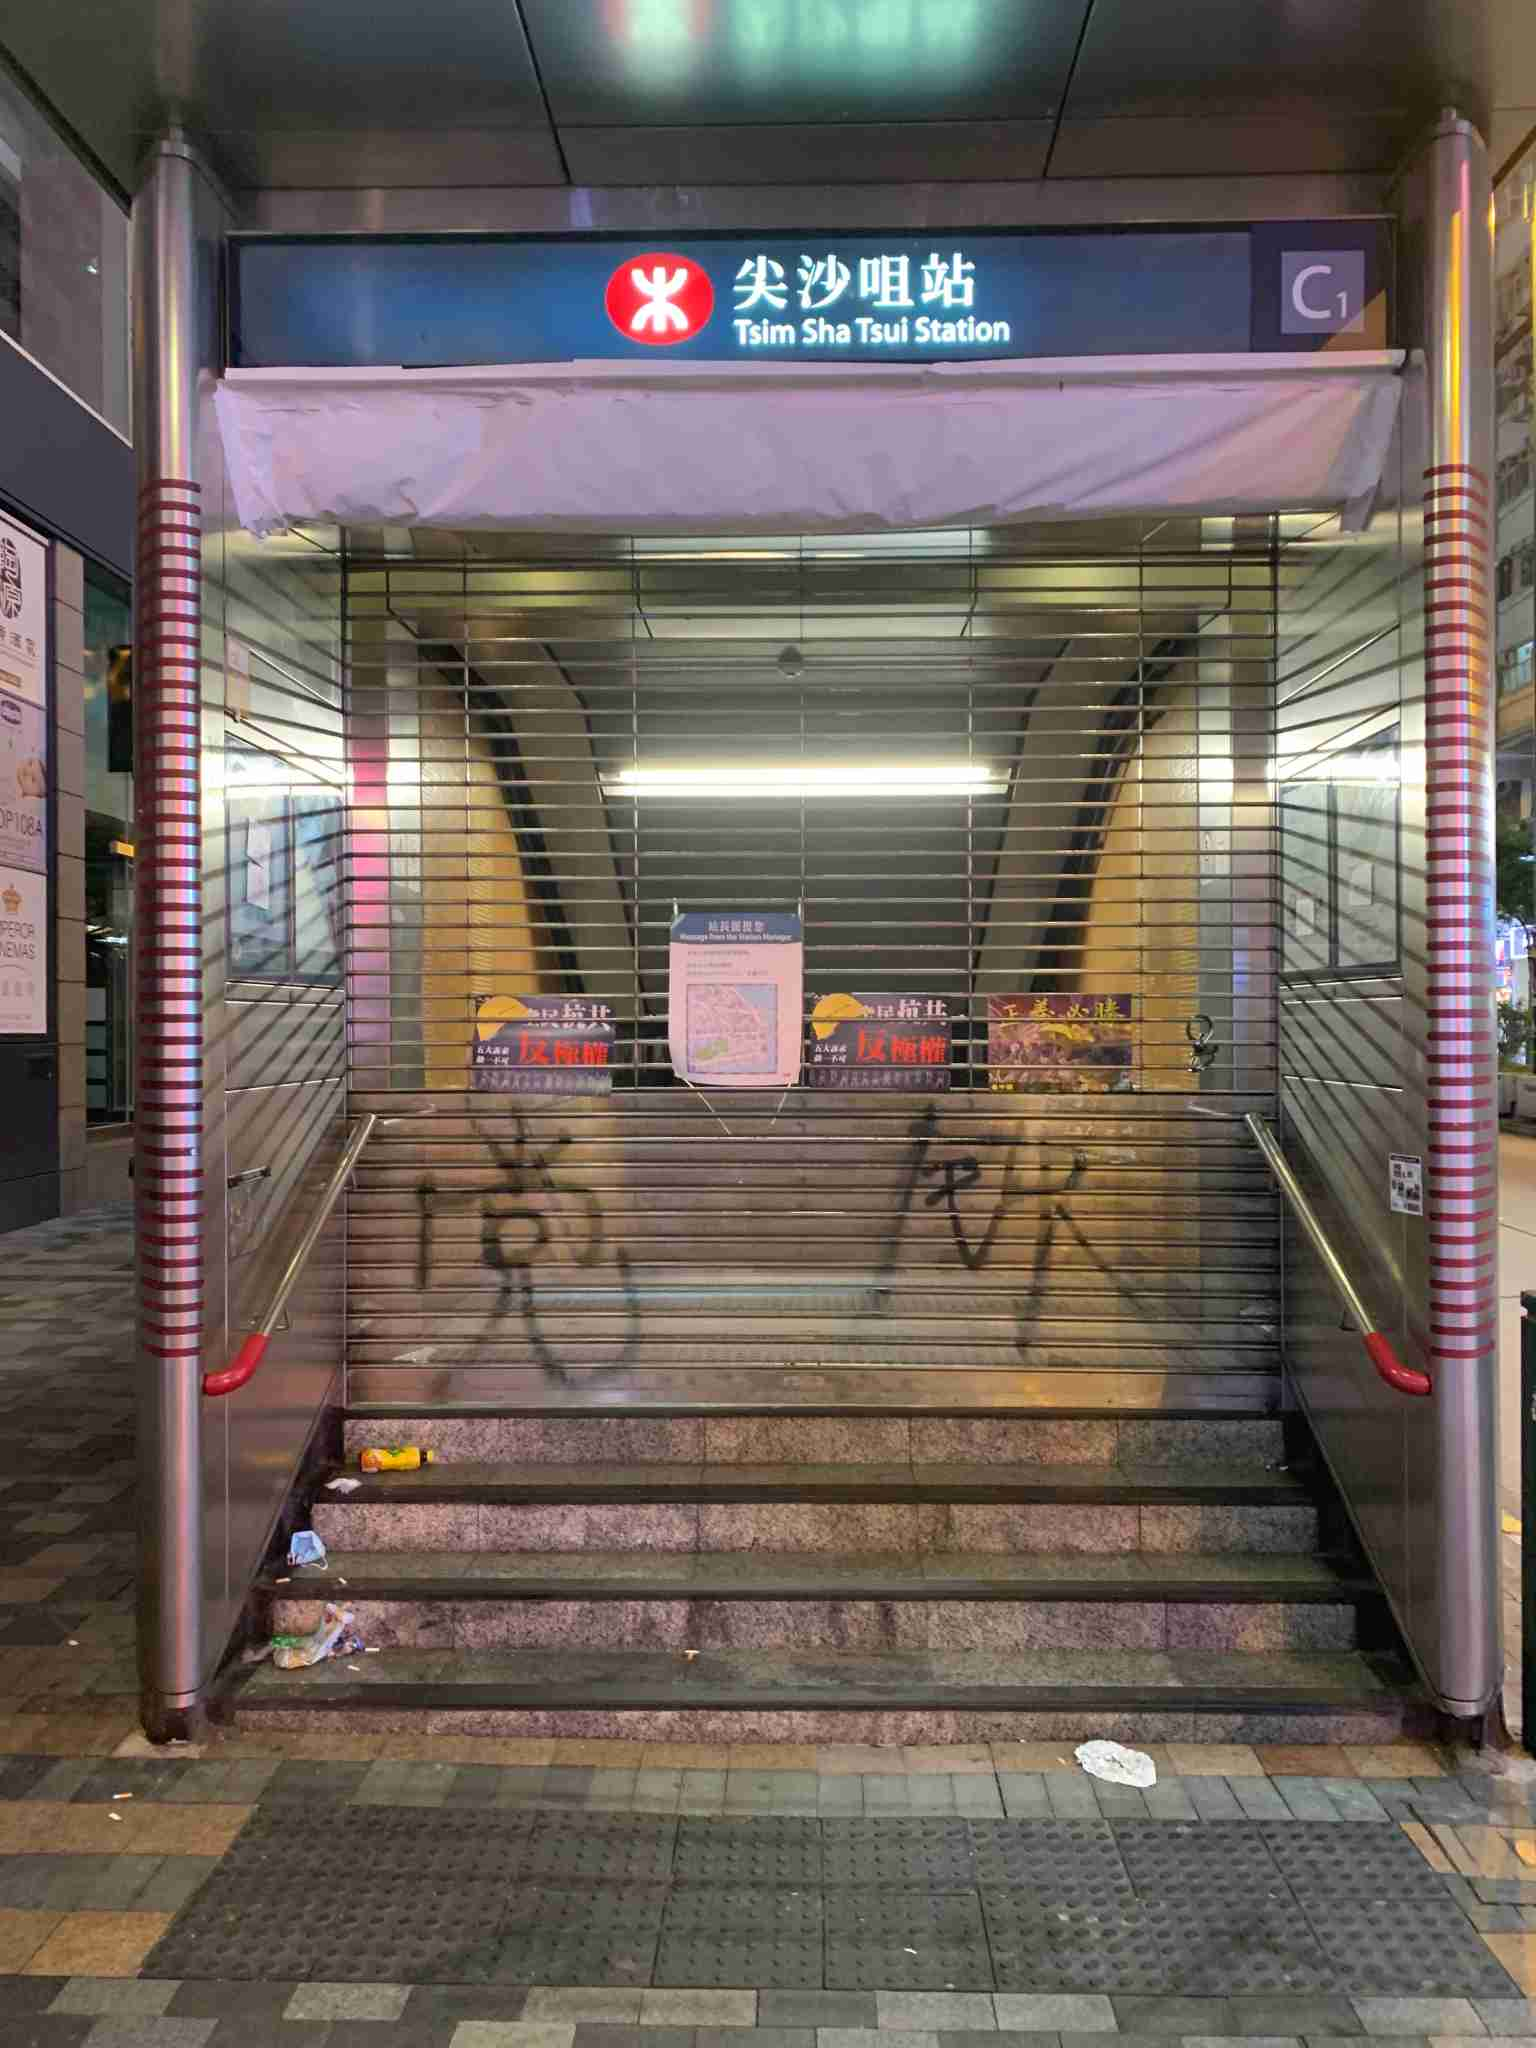 Closed entrance to the Tsim Sha Tsui metro station in Hong Kong photo by Clint Henderson/The Points Guy